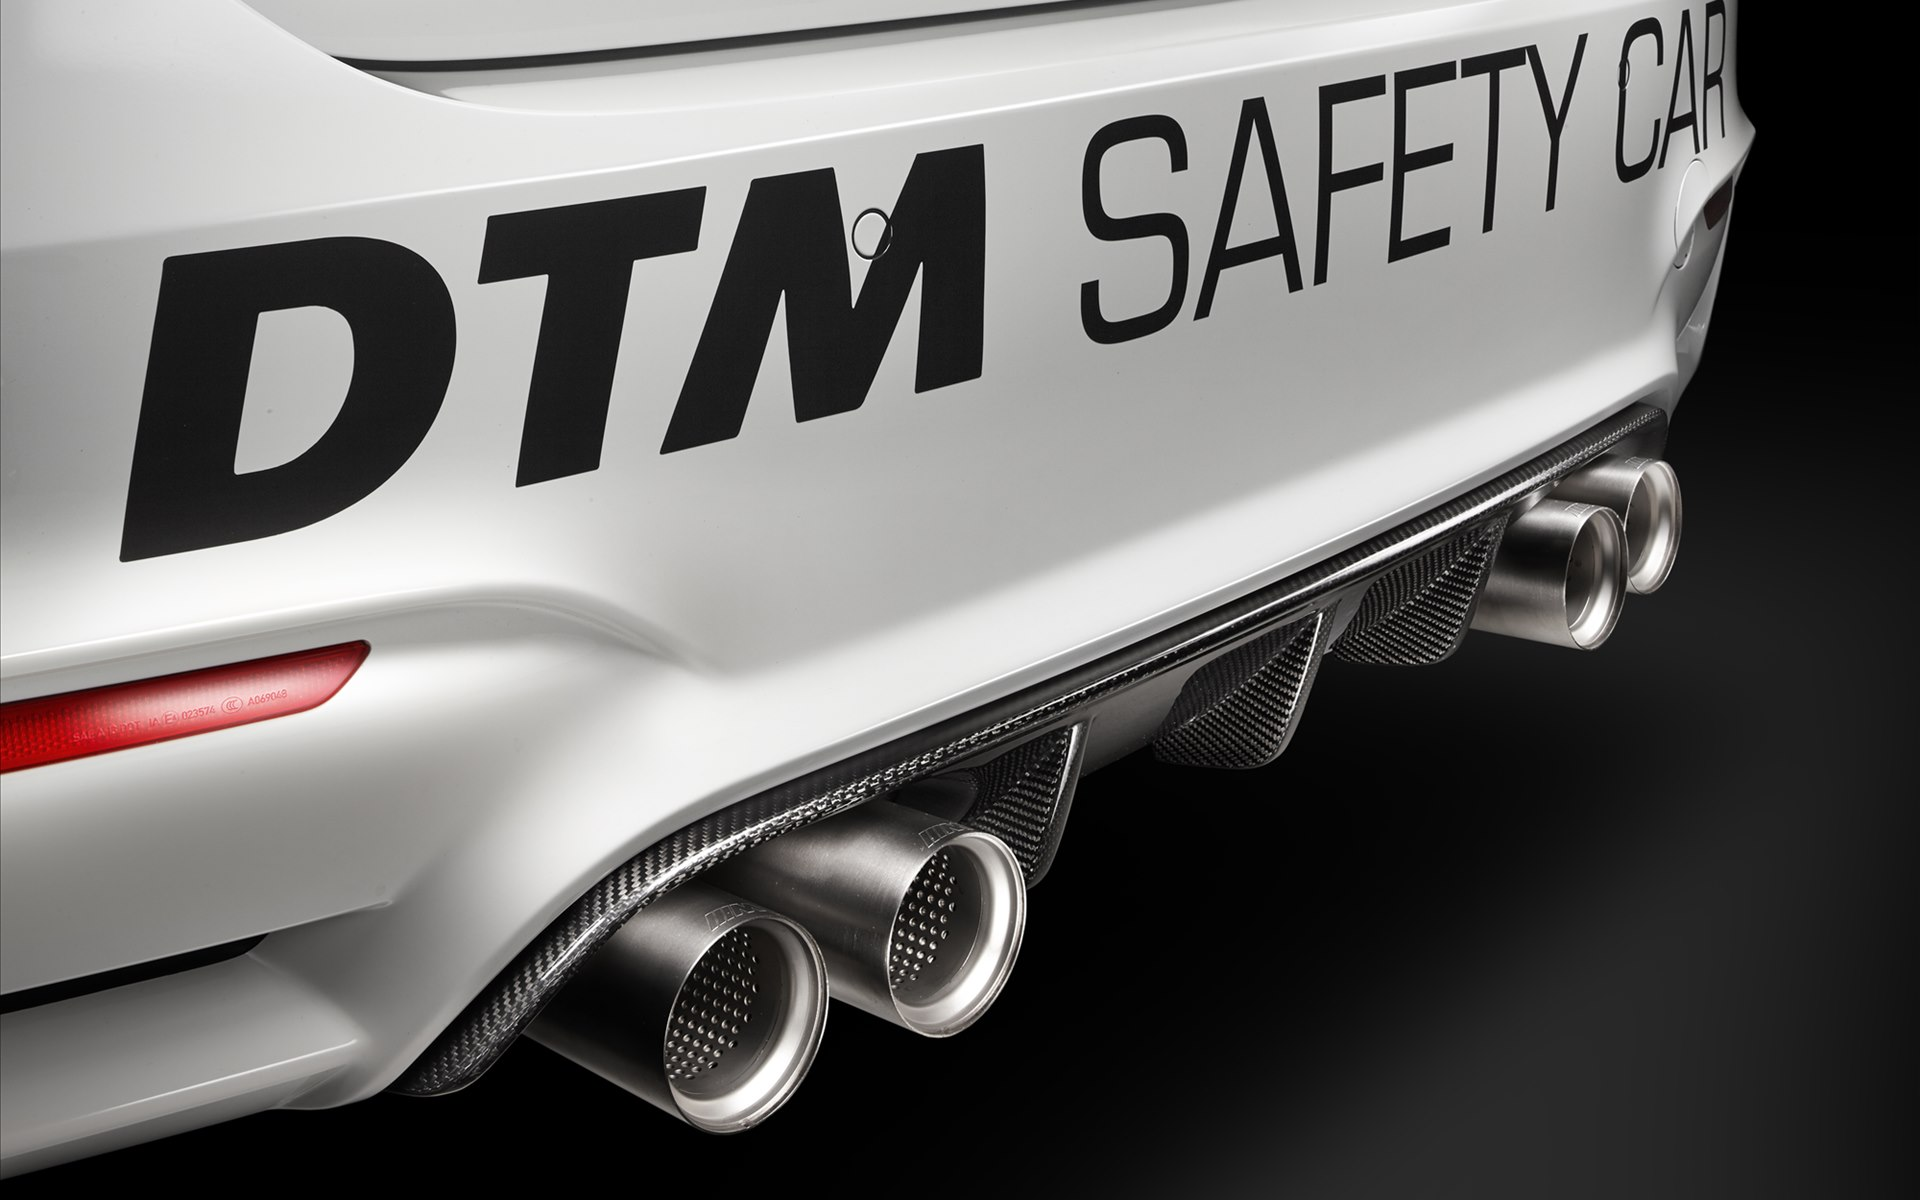 2019 BMW M4 Coupe DTM Safety Car photo - 5